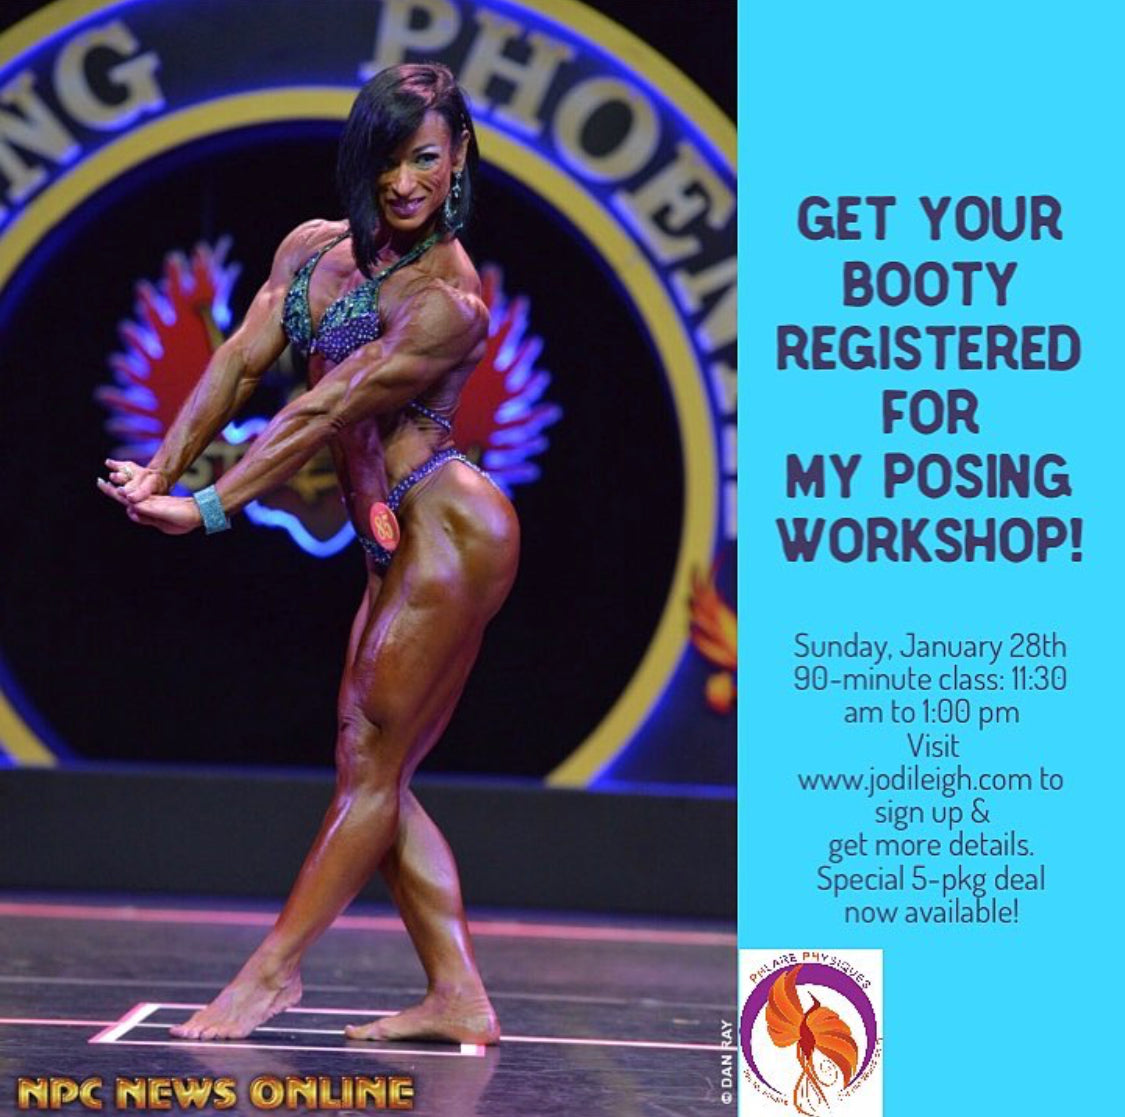 Jodi Miller's First Posing Workshop of 2018!